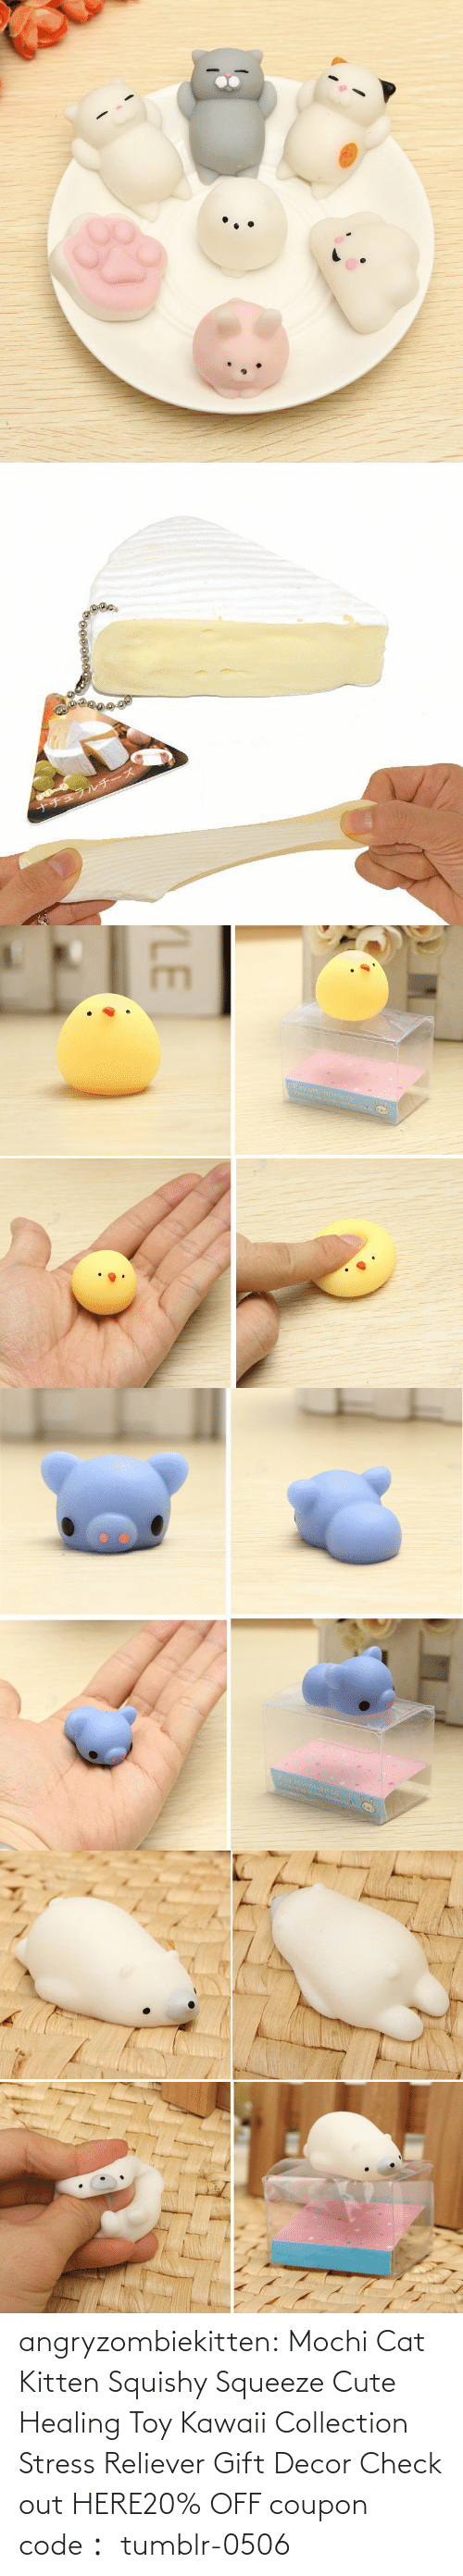 Cute, Tumblr, and Blog: angryzombiekitten:  Mochi Cat Kitten Squishy Squeeze Cute Healing Toy Kawaii Collection Stress Reliever Gift Decor Check out HERE20% OFF coupon code: tumblr-0506